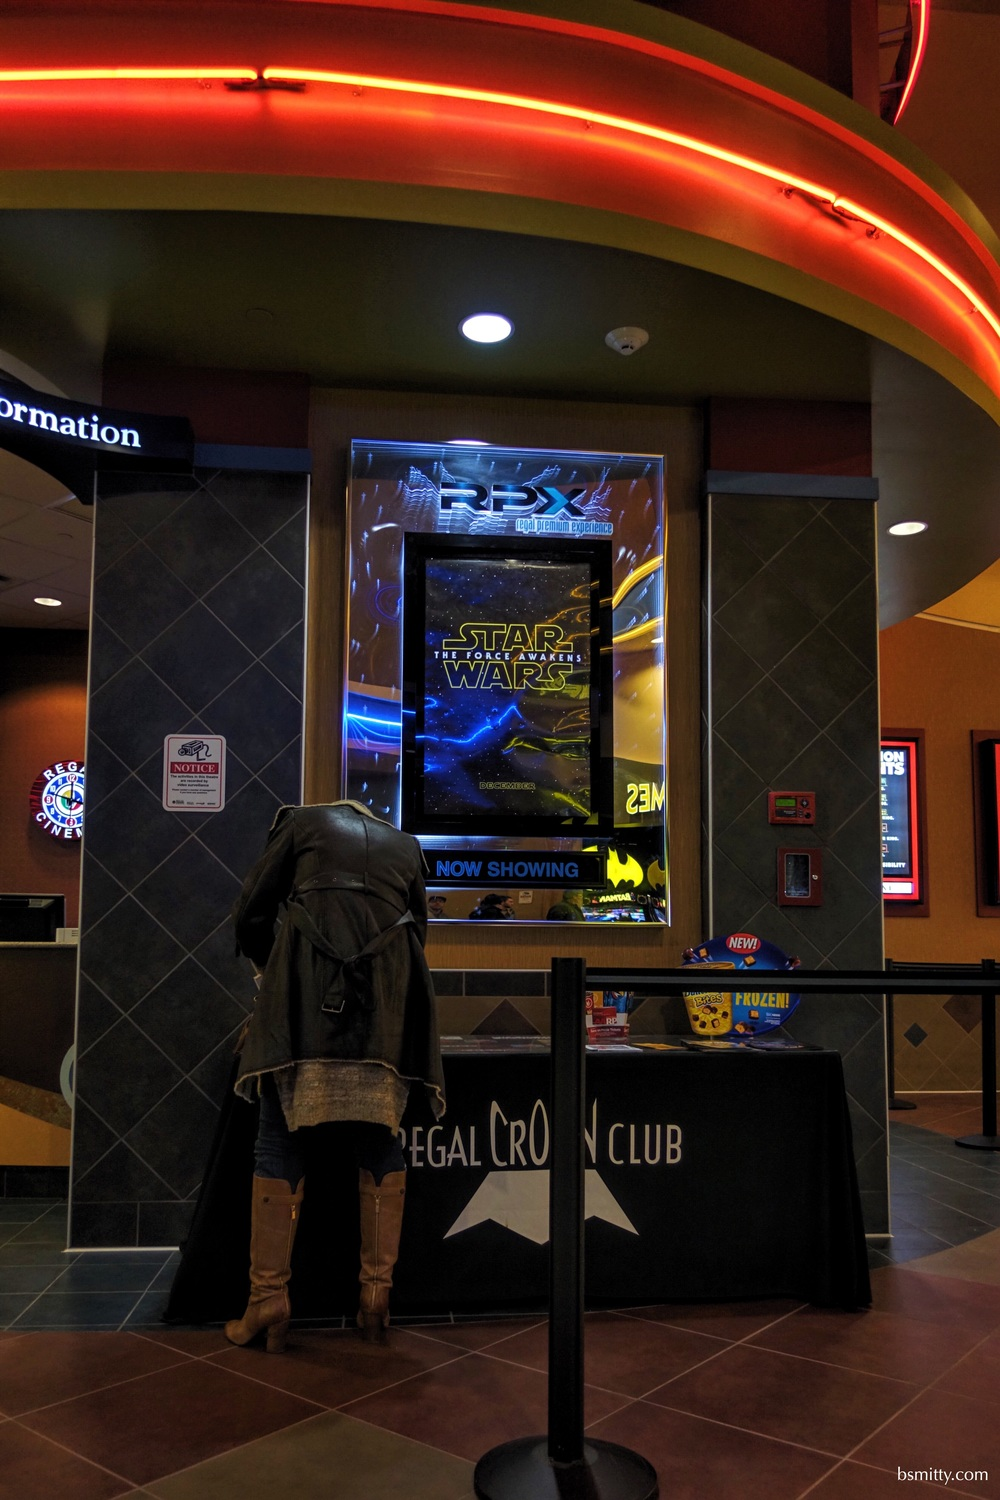 In front of this headless person was the only signage of Star Wars in this theatre. Mary and I plan to see it again maybe will find something else set up there